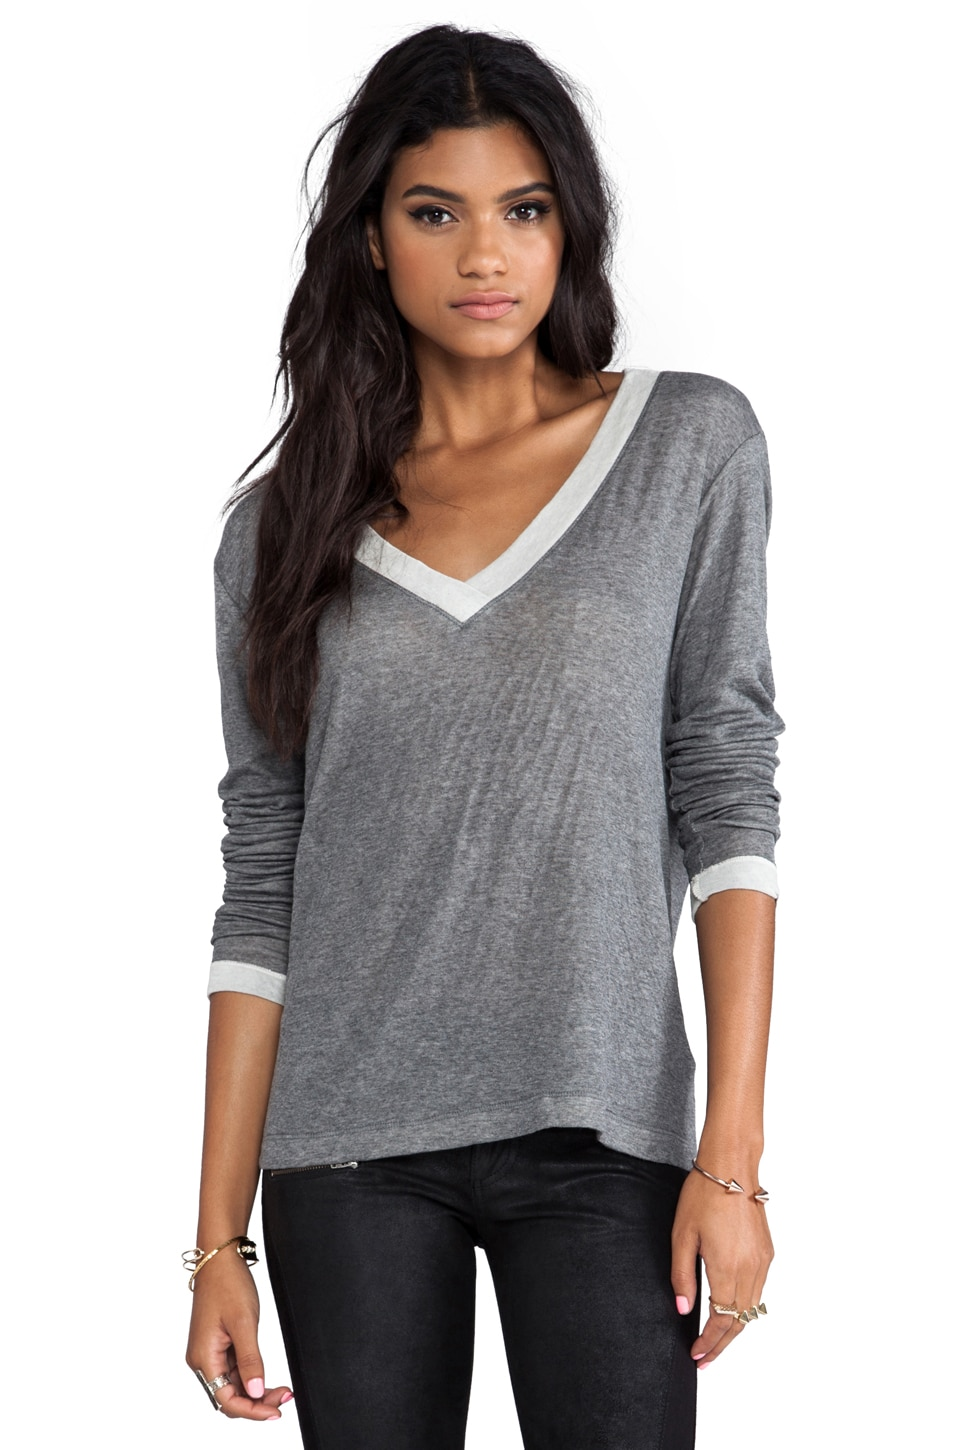 Feel the Piece Andy Top in Heather Grey